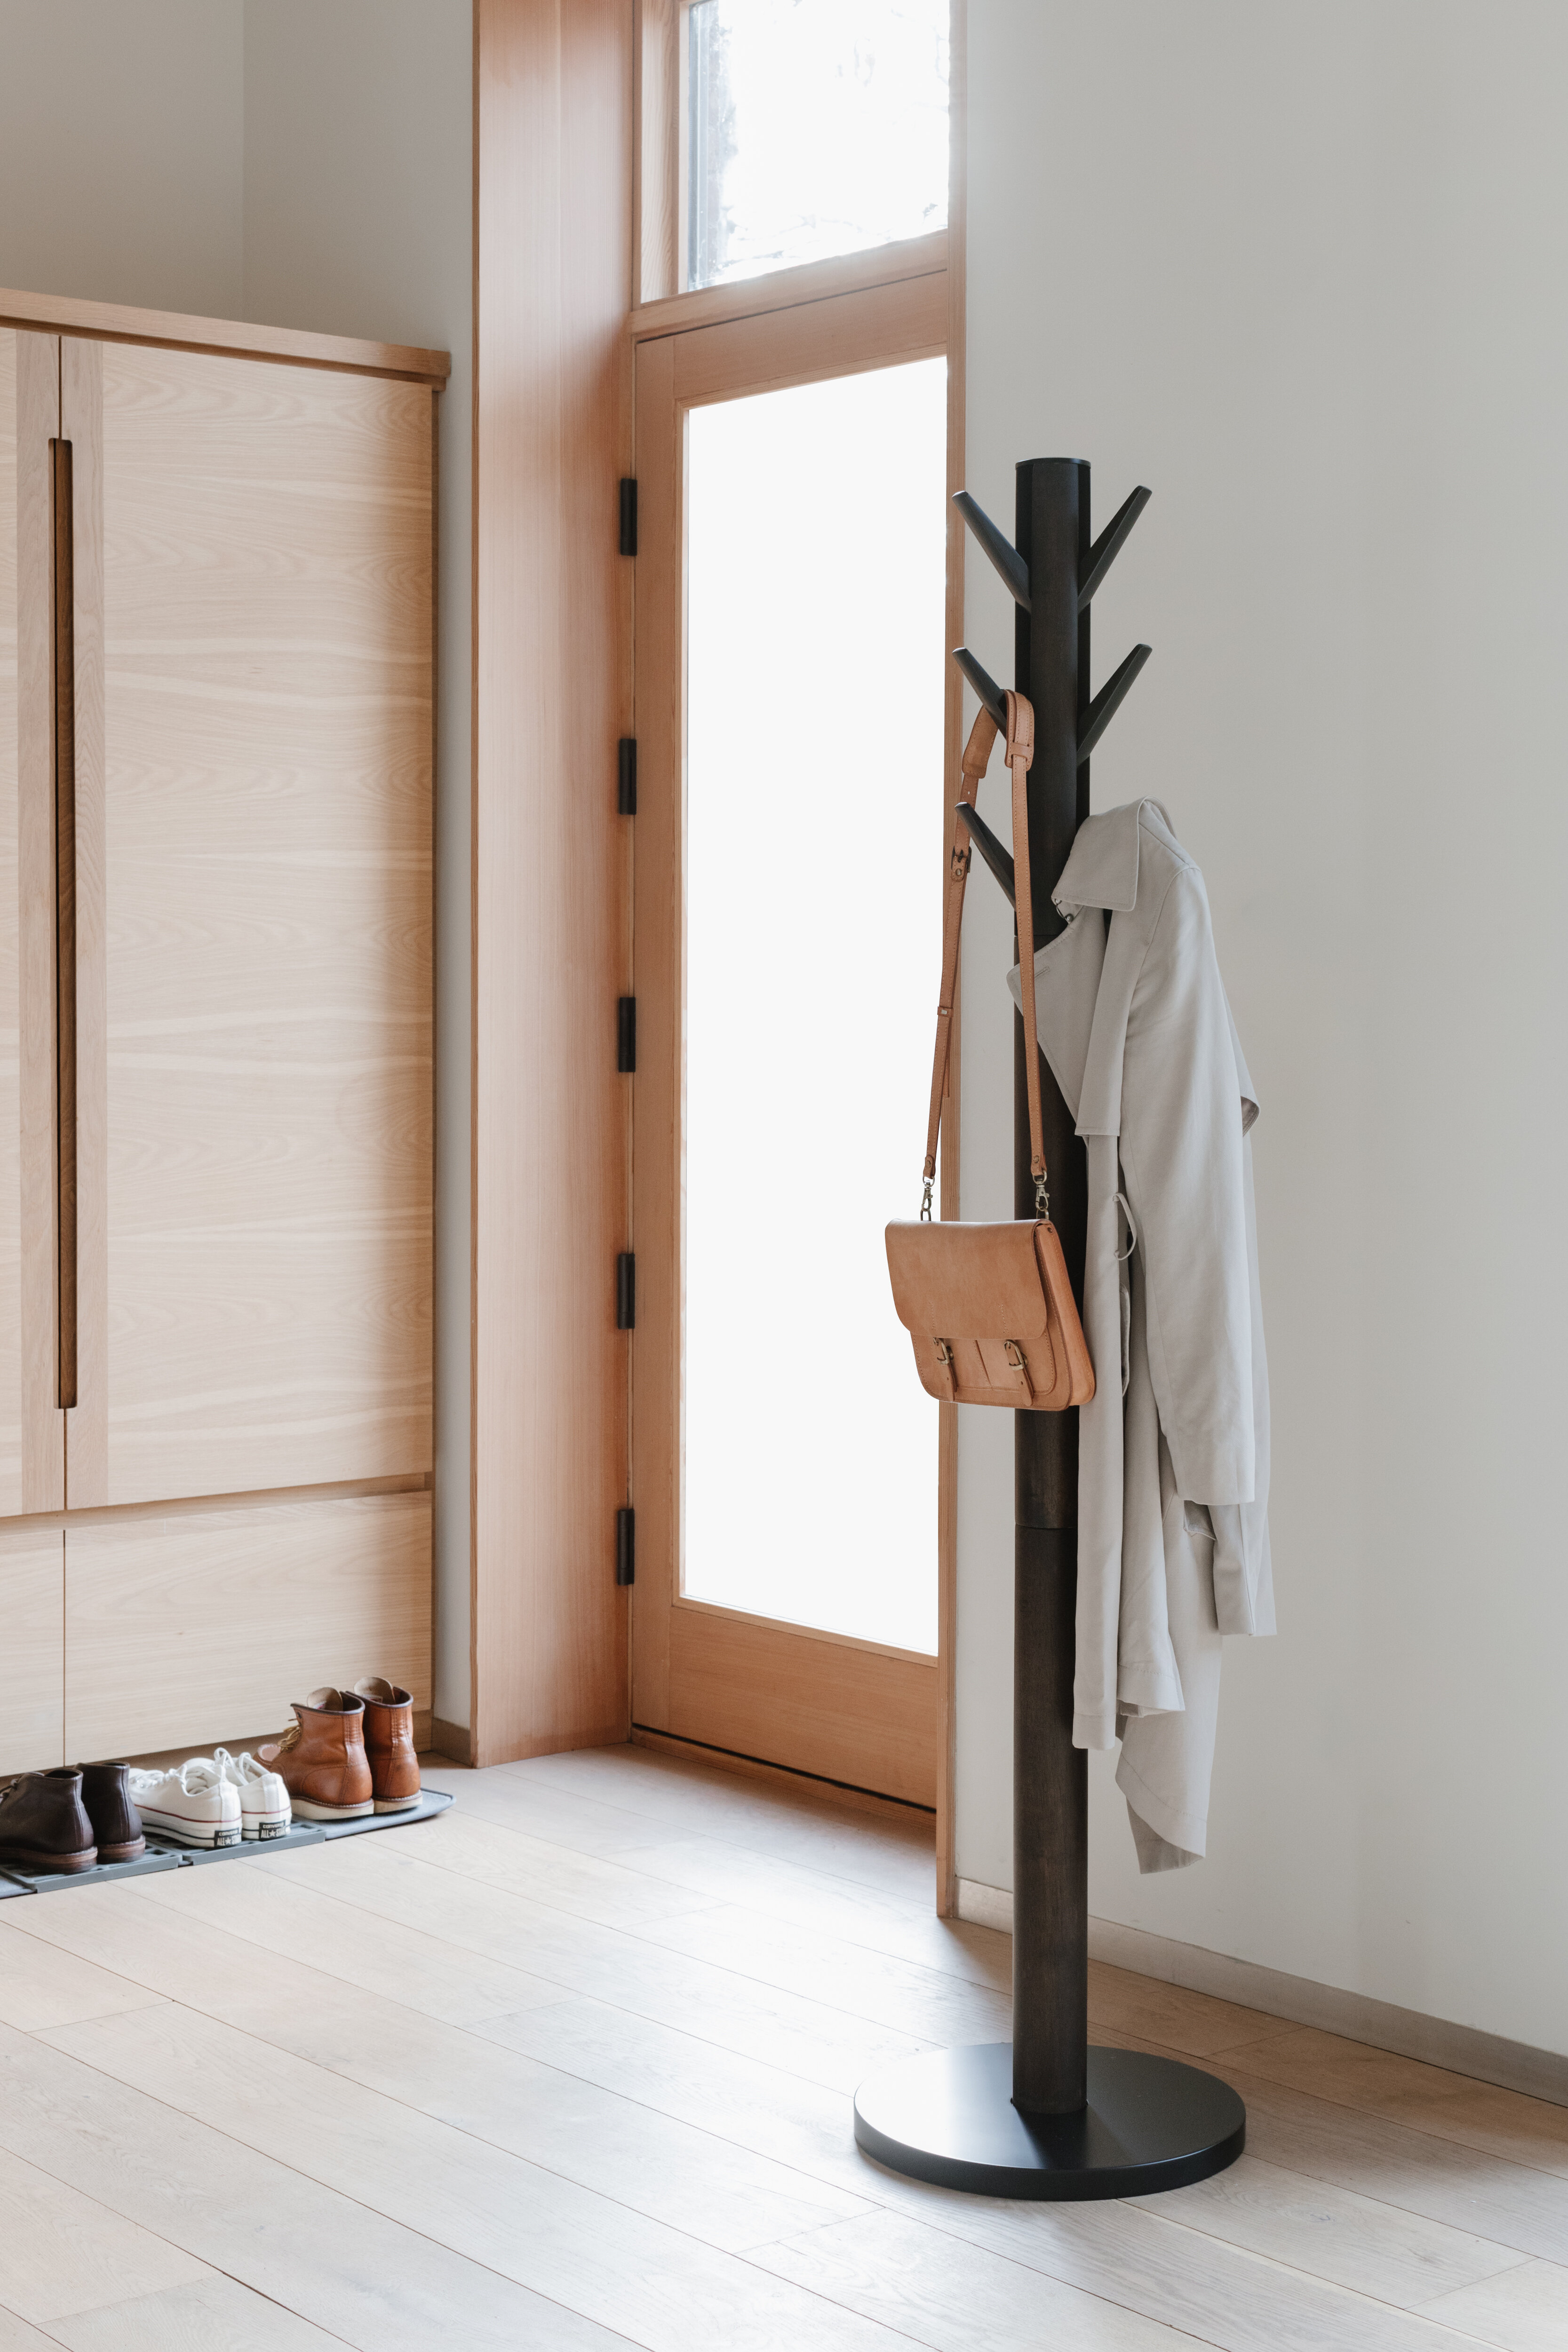 Umbra Flapper Coat Rack & Reviews: roack | Wayfair